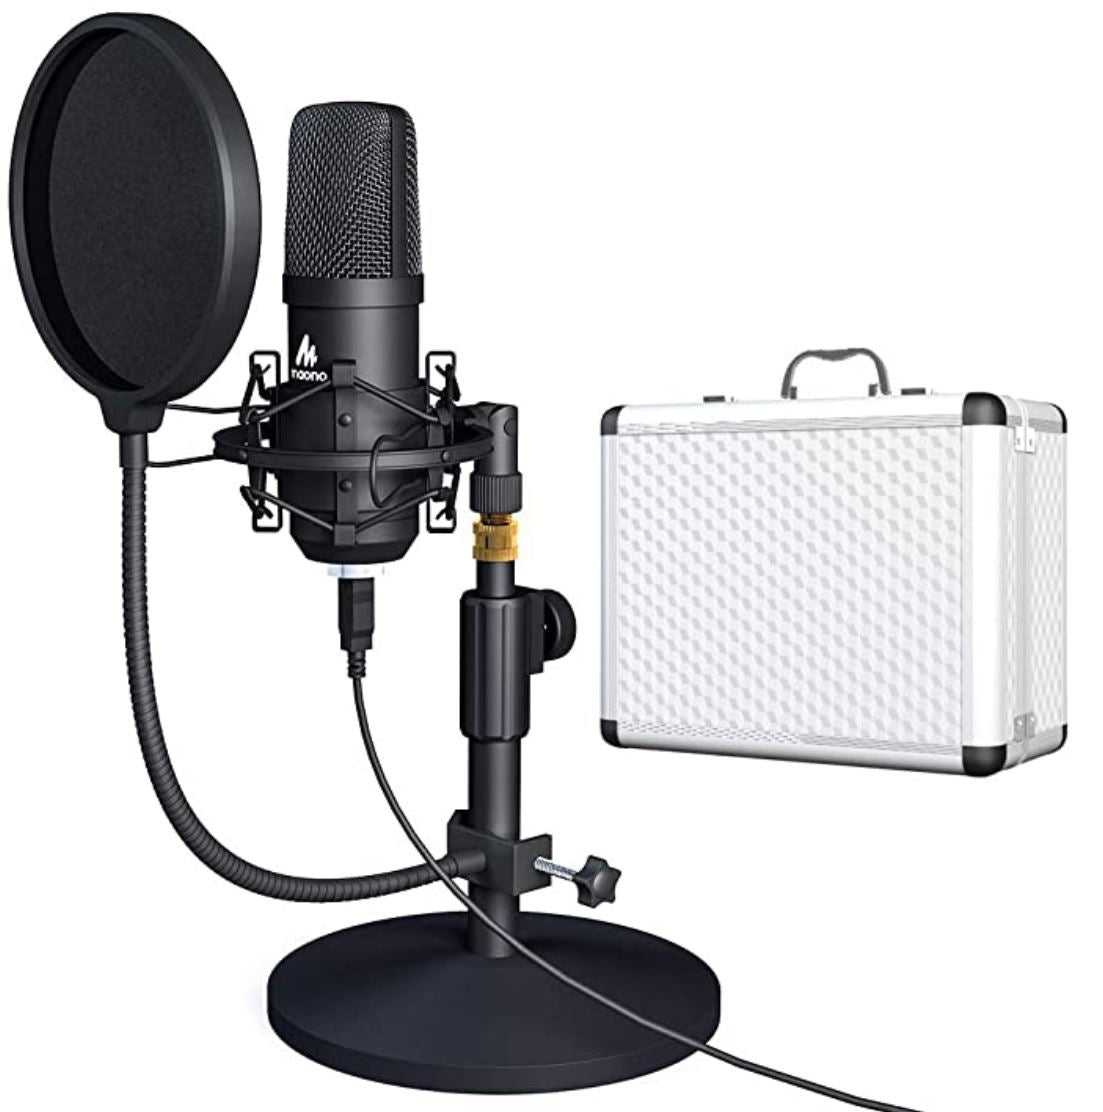 Maono™ USB Podcast Microphone / Streaming Microphone